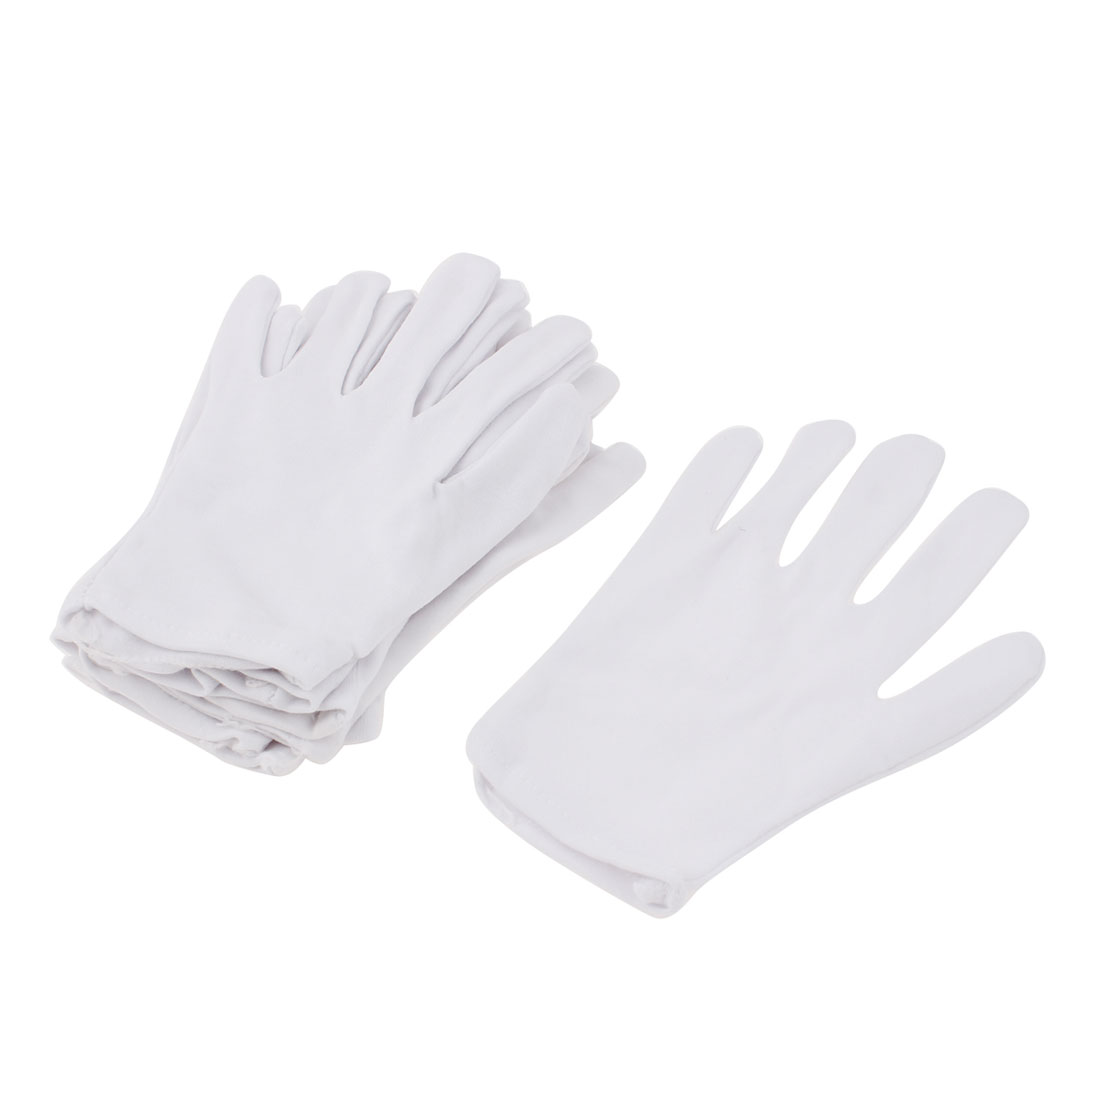 5 Pairs White Nylon Protective Full Fingers Stretchy Labor Working Work Gloves